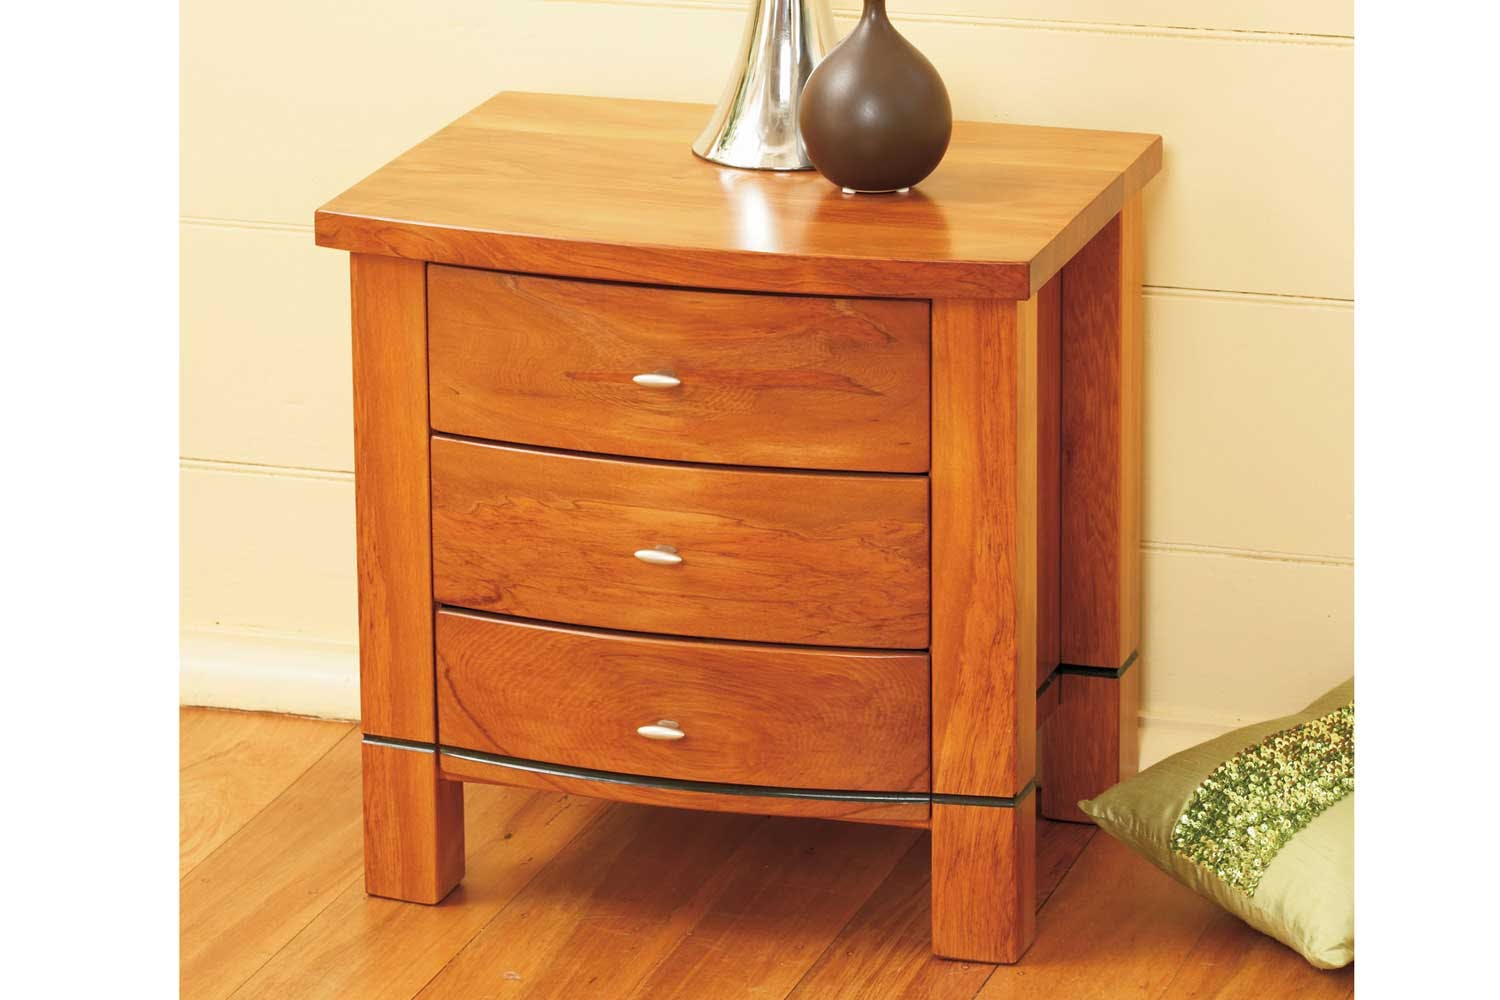 Vision Rimu 4 Drawer Bedside Table by Ezirest Furniture